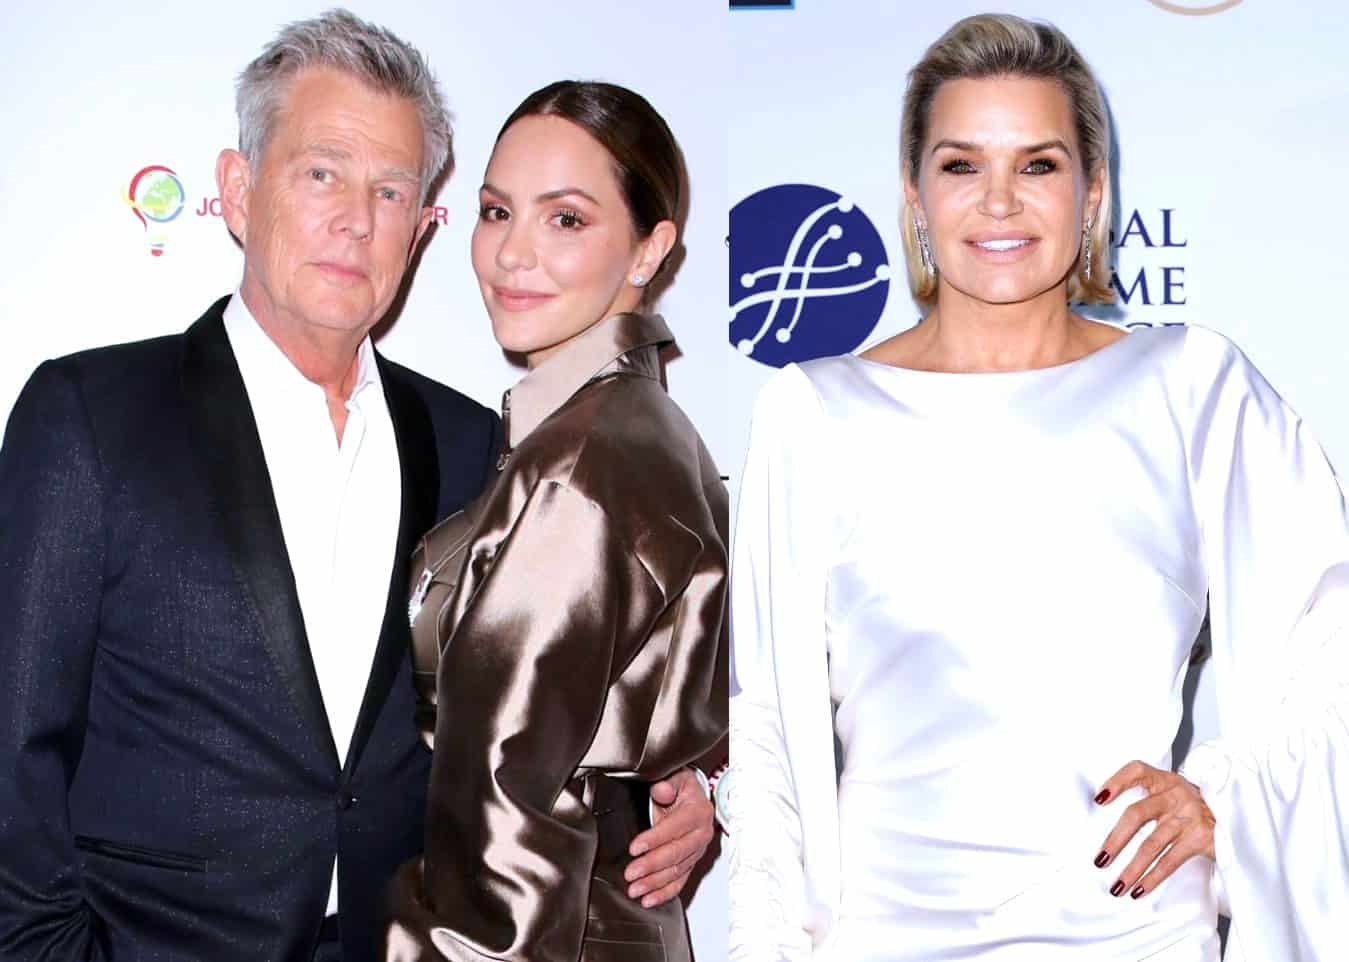 David Foster On Why Appearing On Rhobh Was Annoying Denies Divorcing Yolanda Hadid Due To Sickness